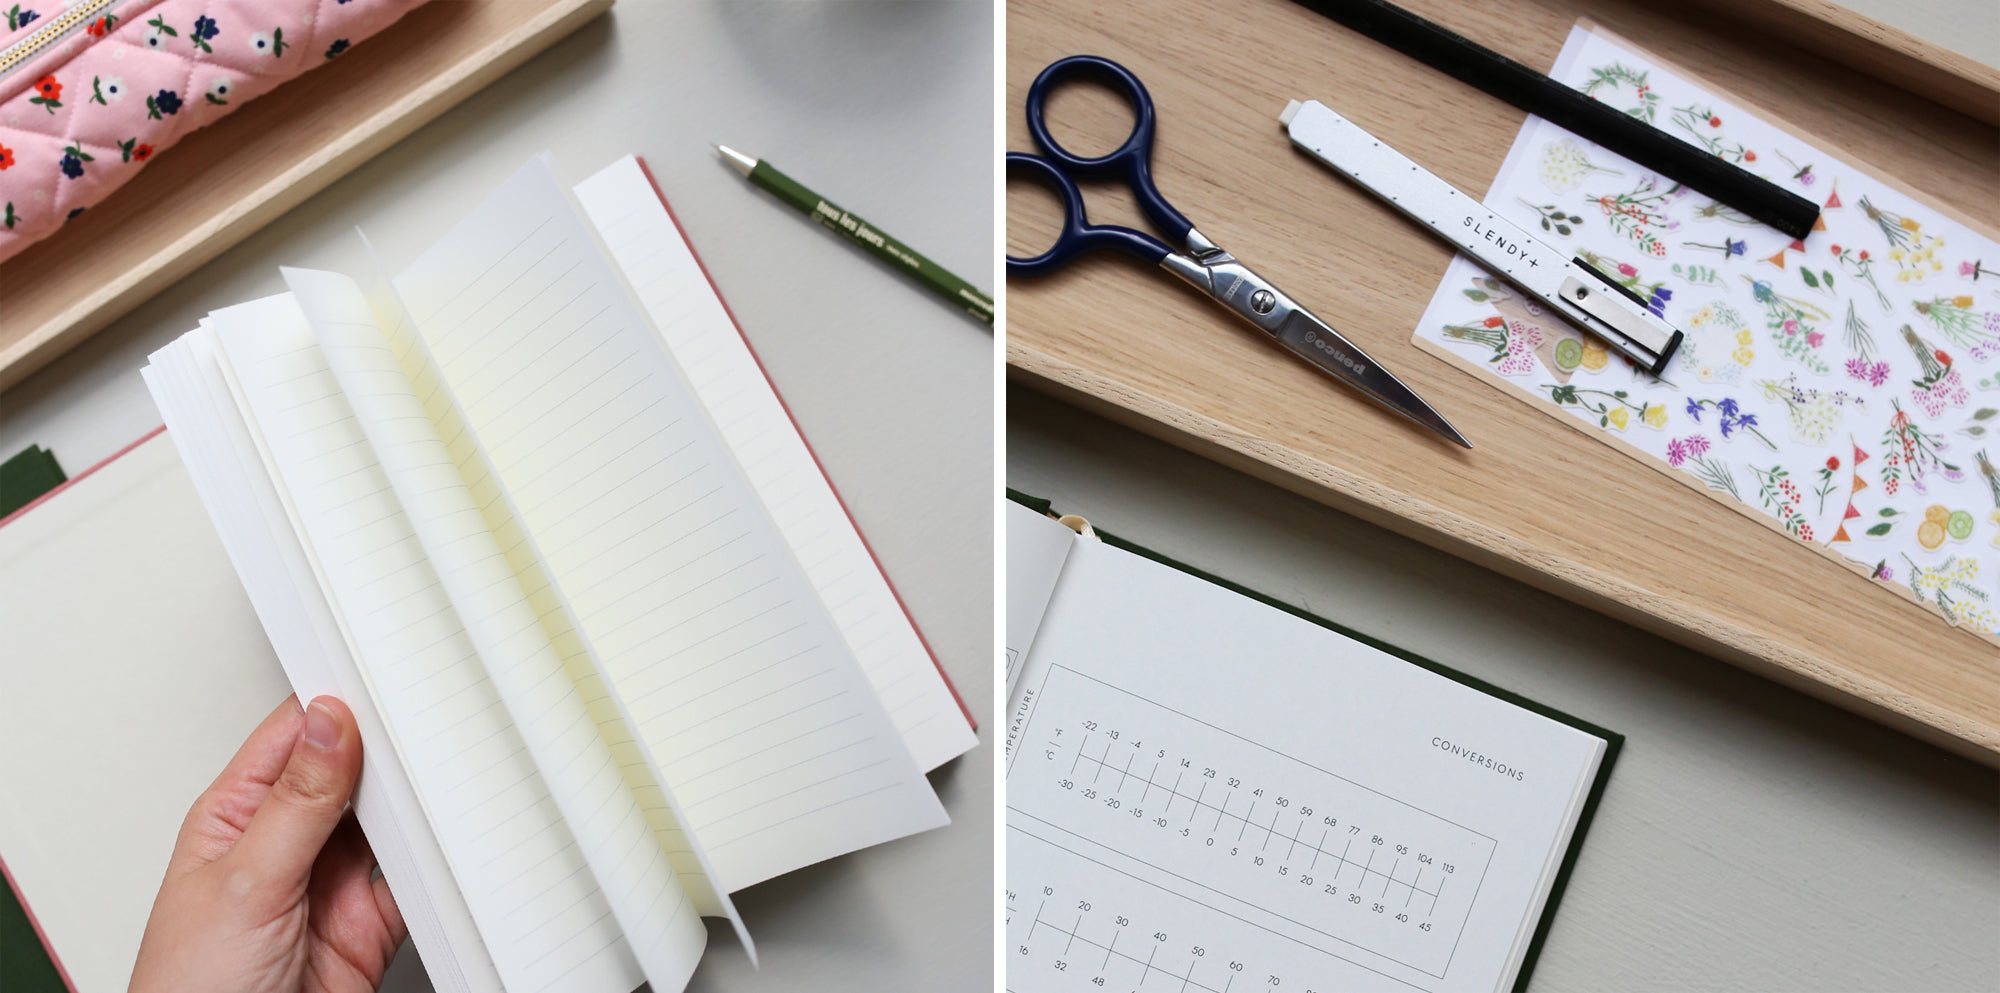 Summer stationery essentials